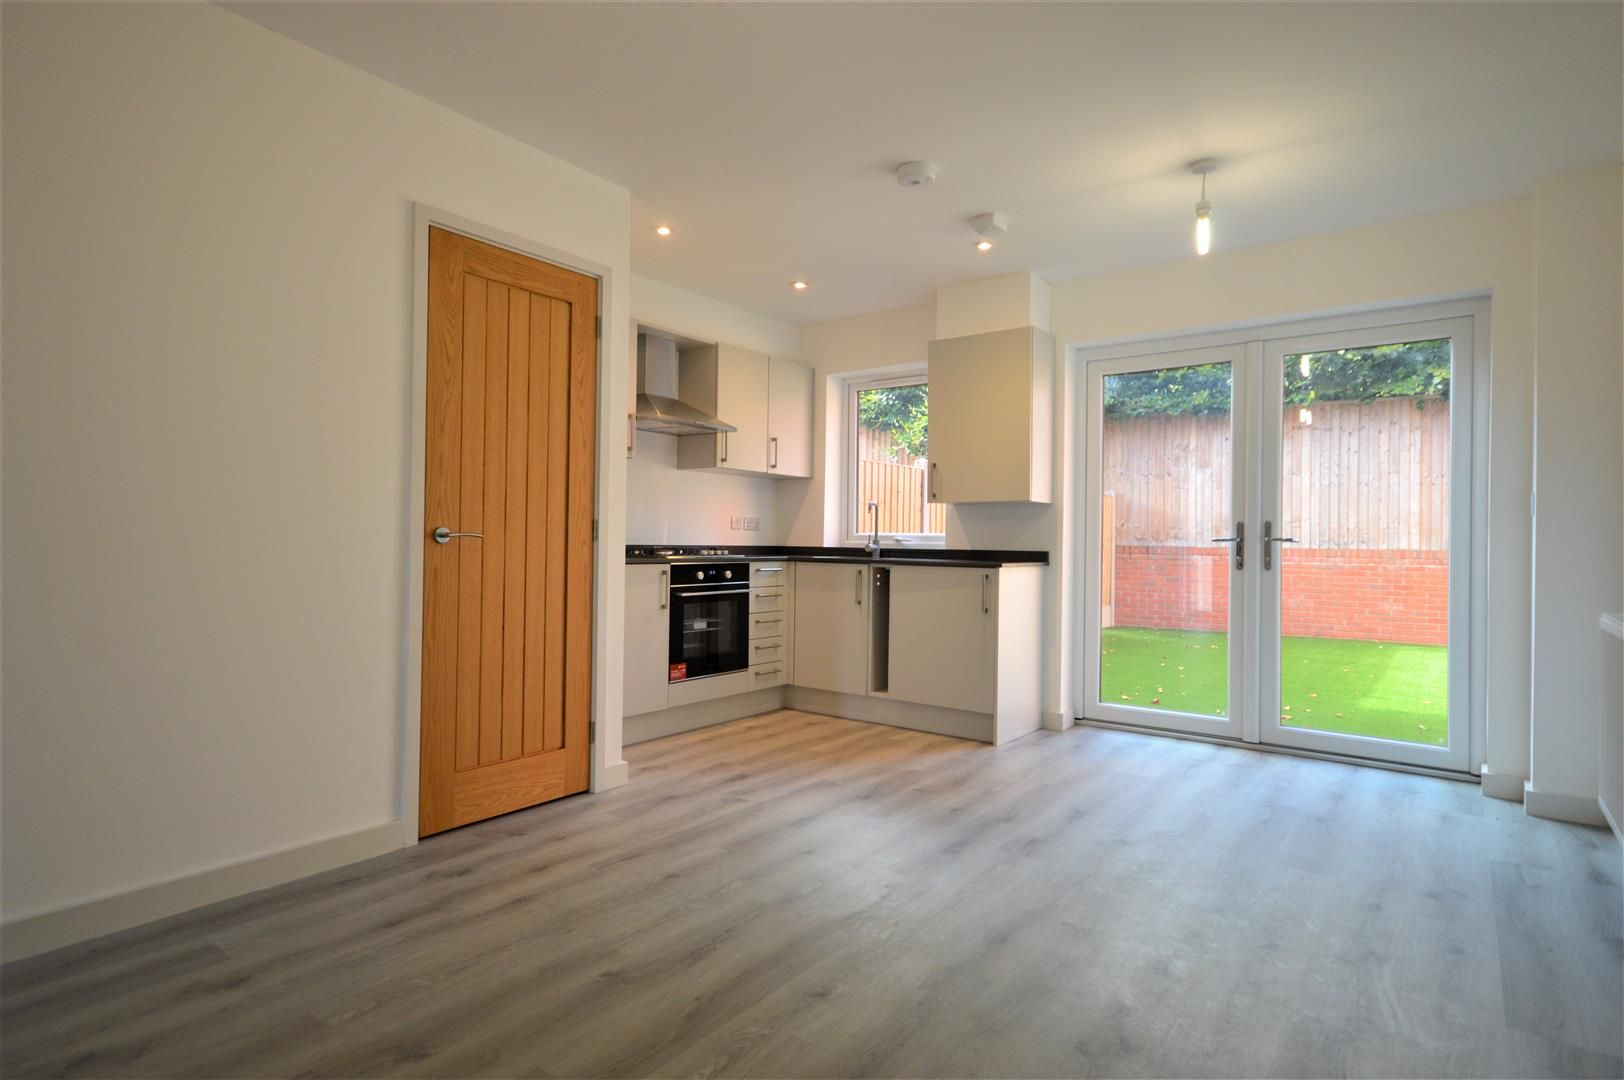 2 bed semi-detached for sale in Leominster 2